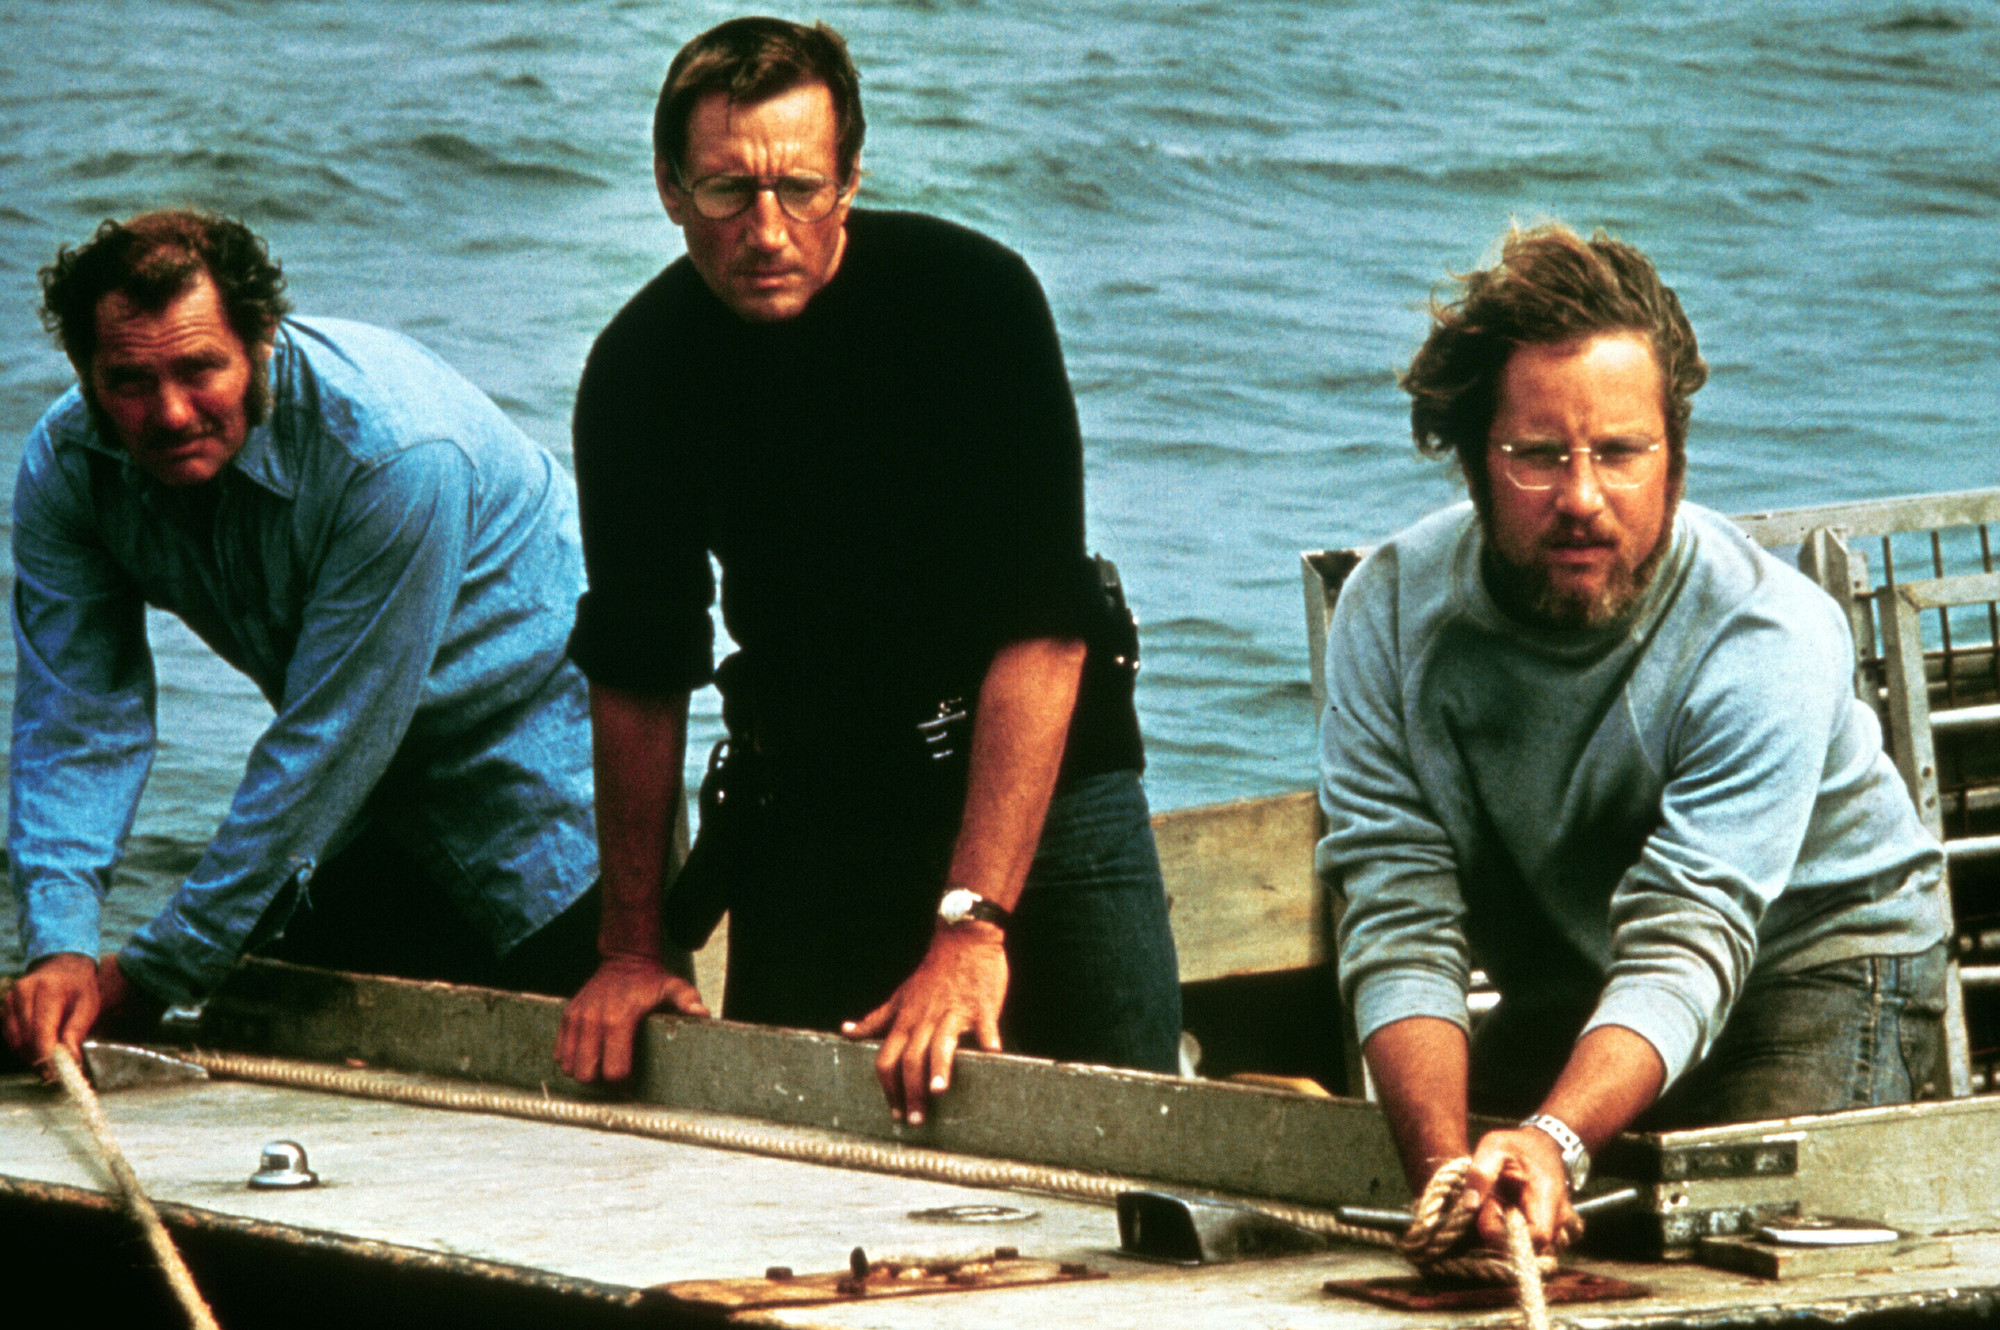 Jaws. 1975. USA. Directed by Steven Spielberg